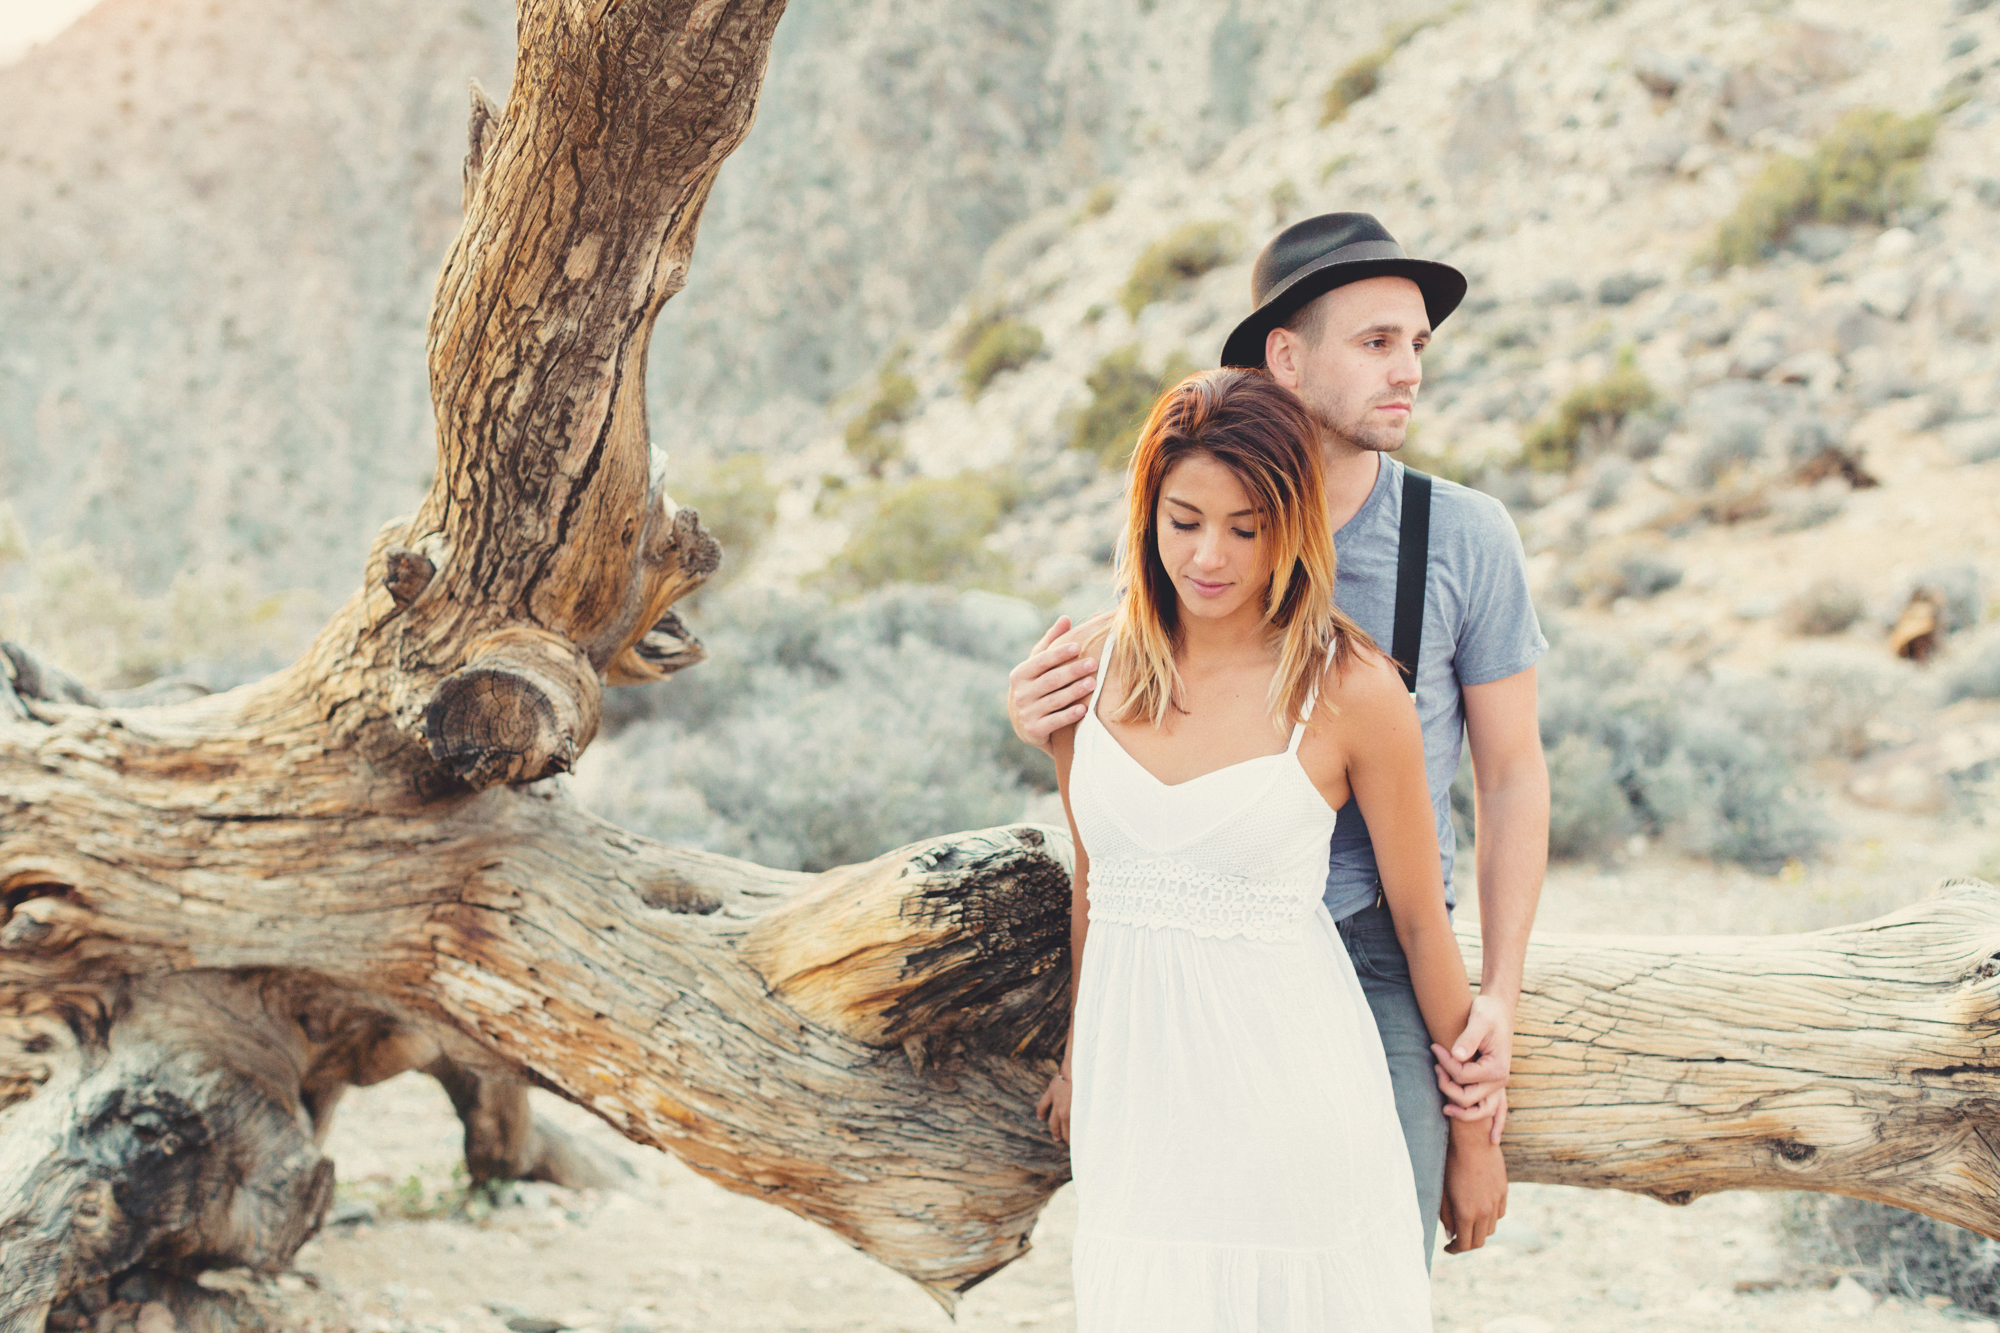 Joshua Tree Engagement Session @Anne-Claire Brun -30